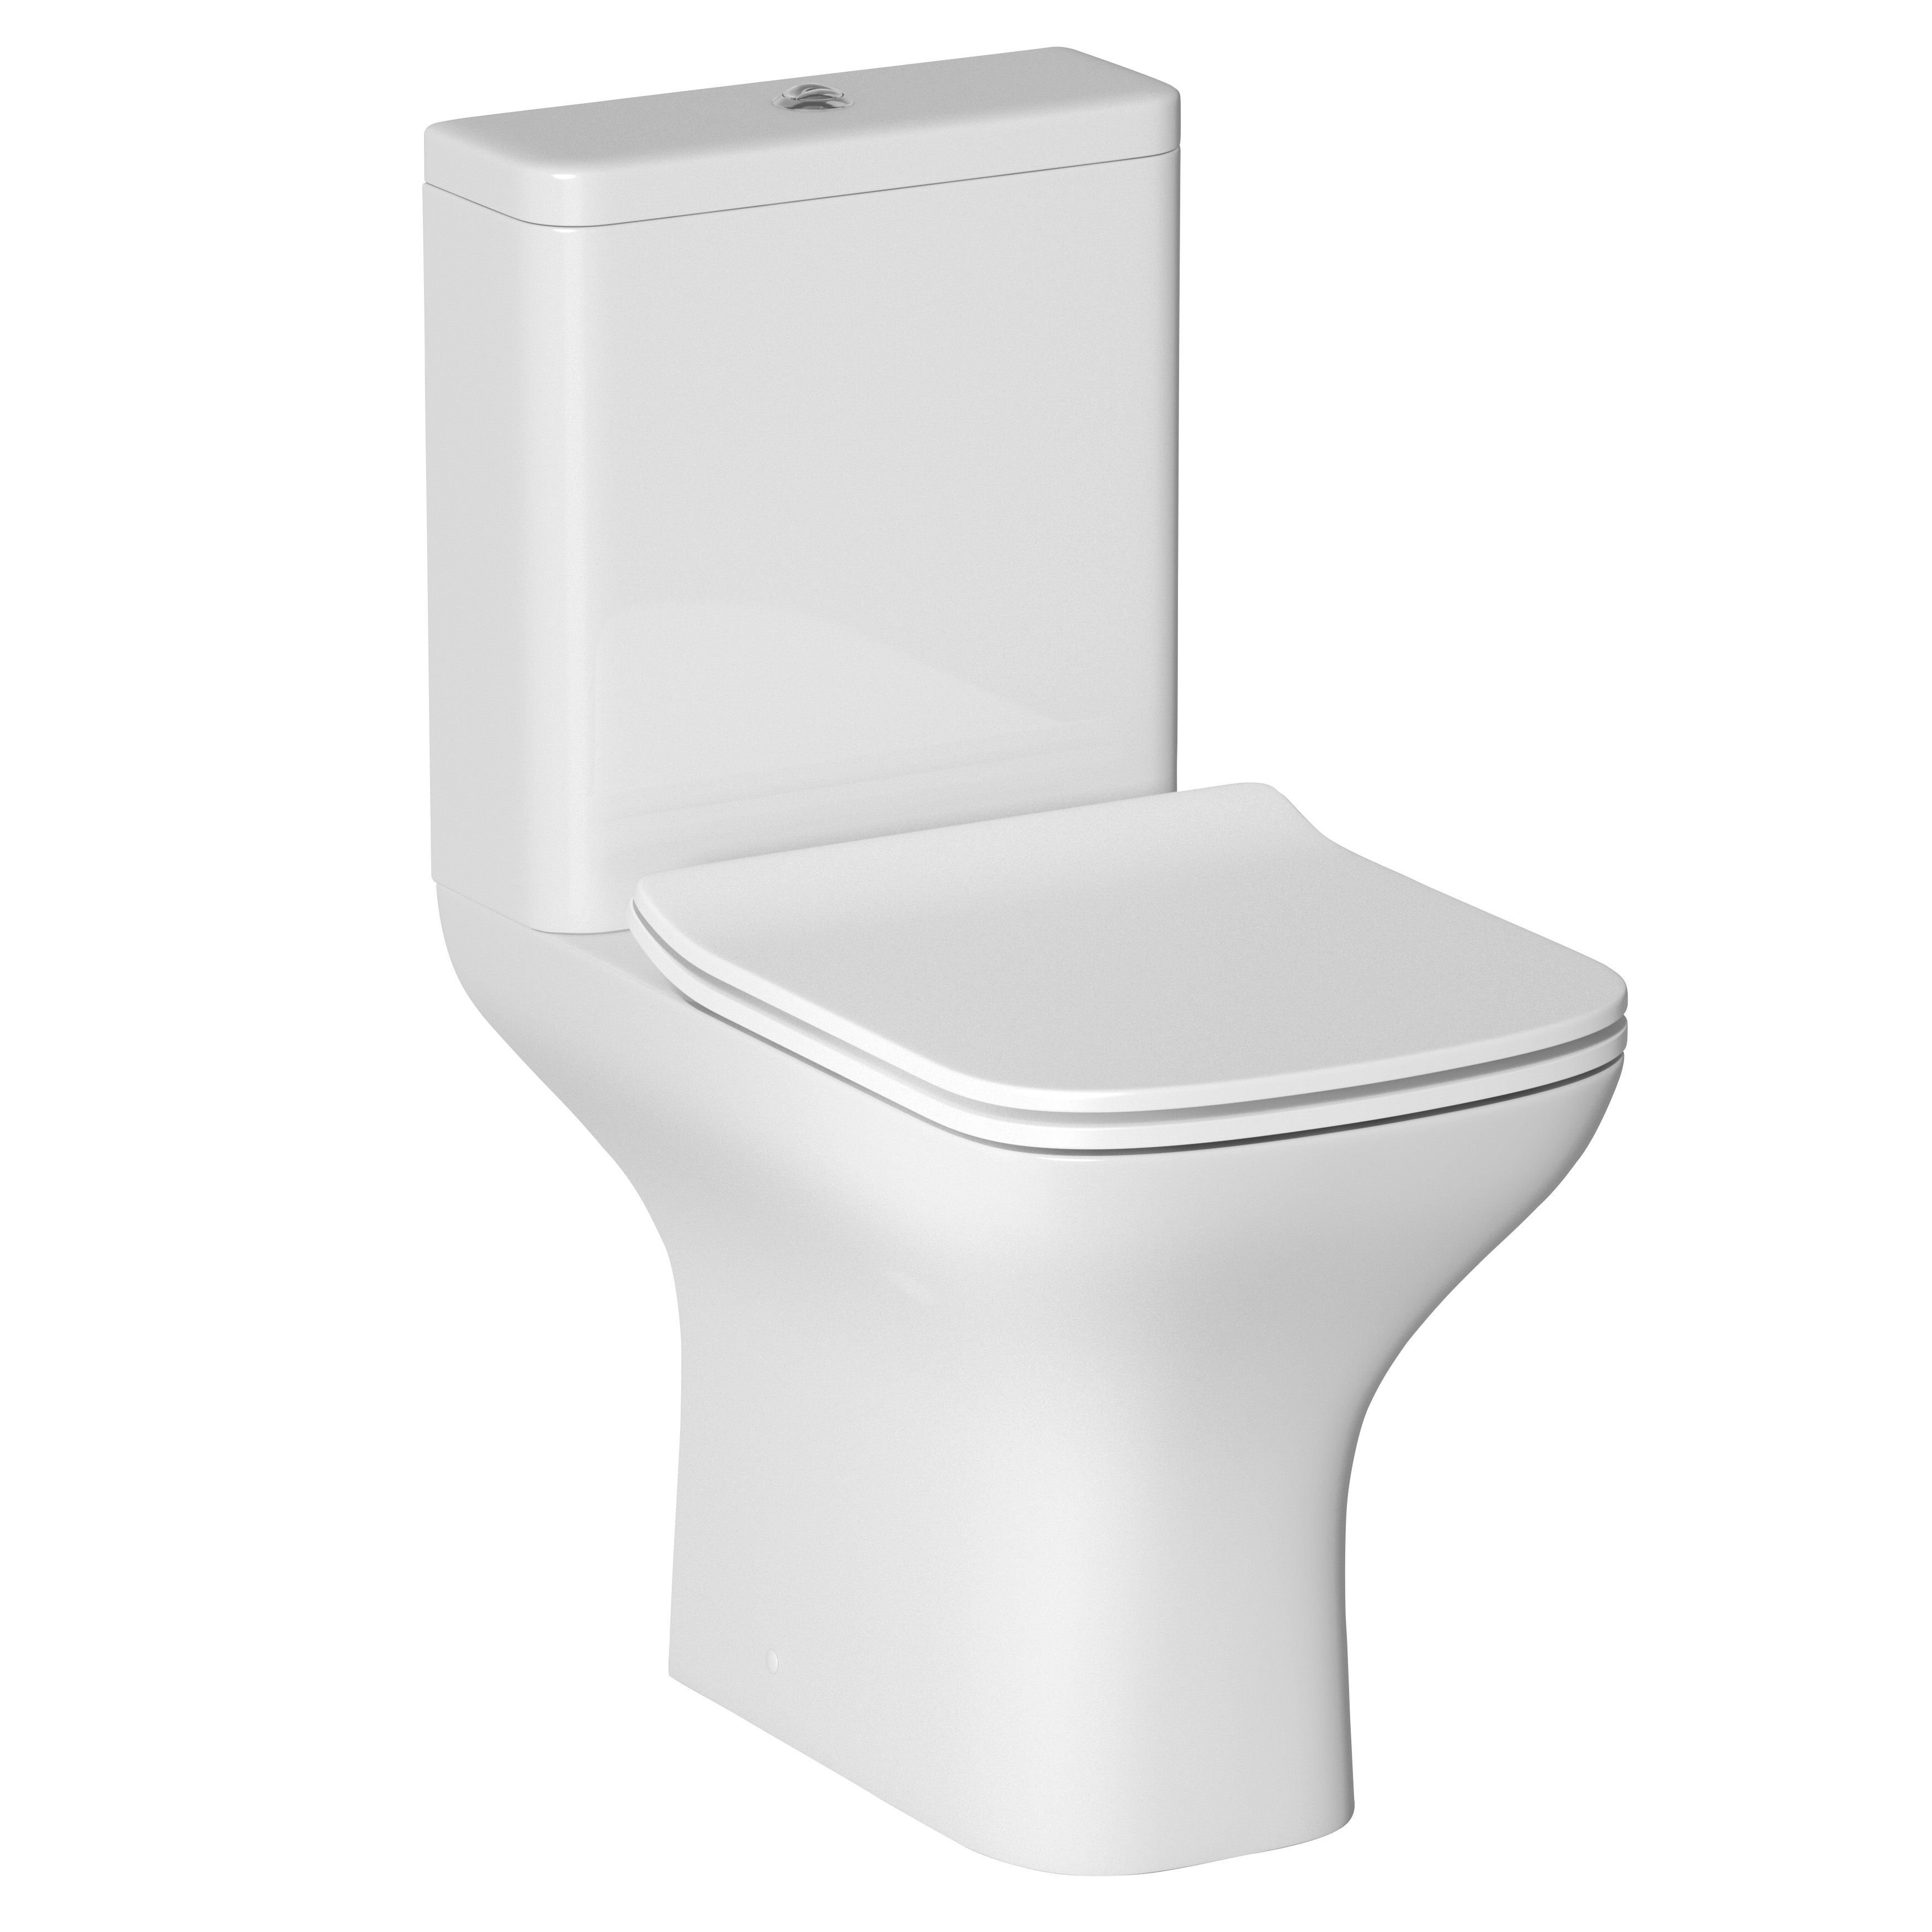 Amazing Cooke Lewis Lanzo Close Coupled Toilet With Soft Close Machost Co Dining Chair Design Ideas Machostcouk